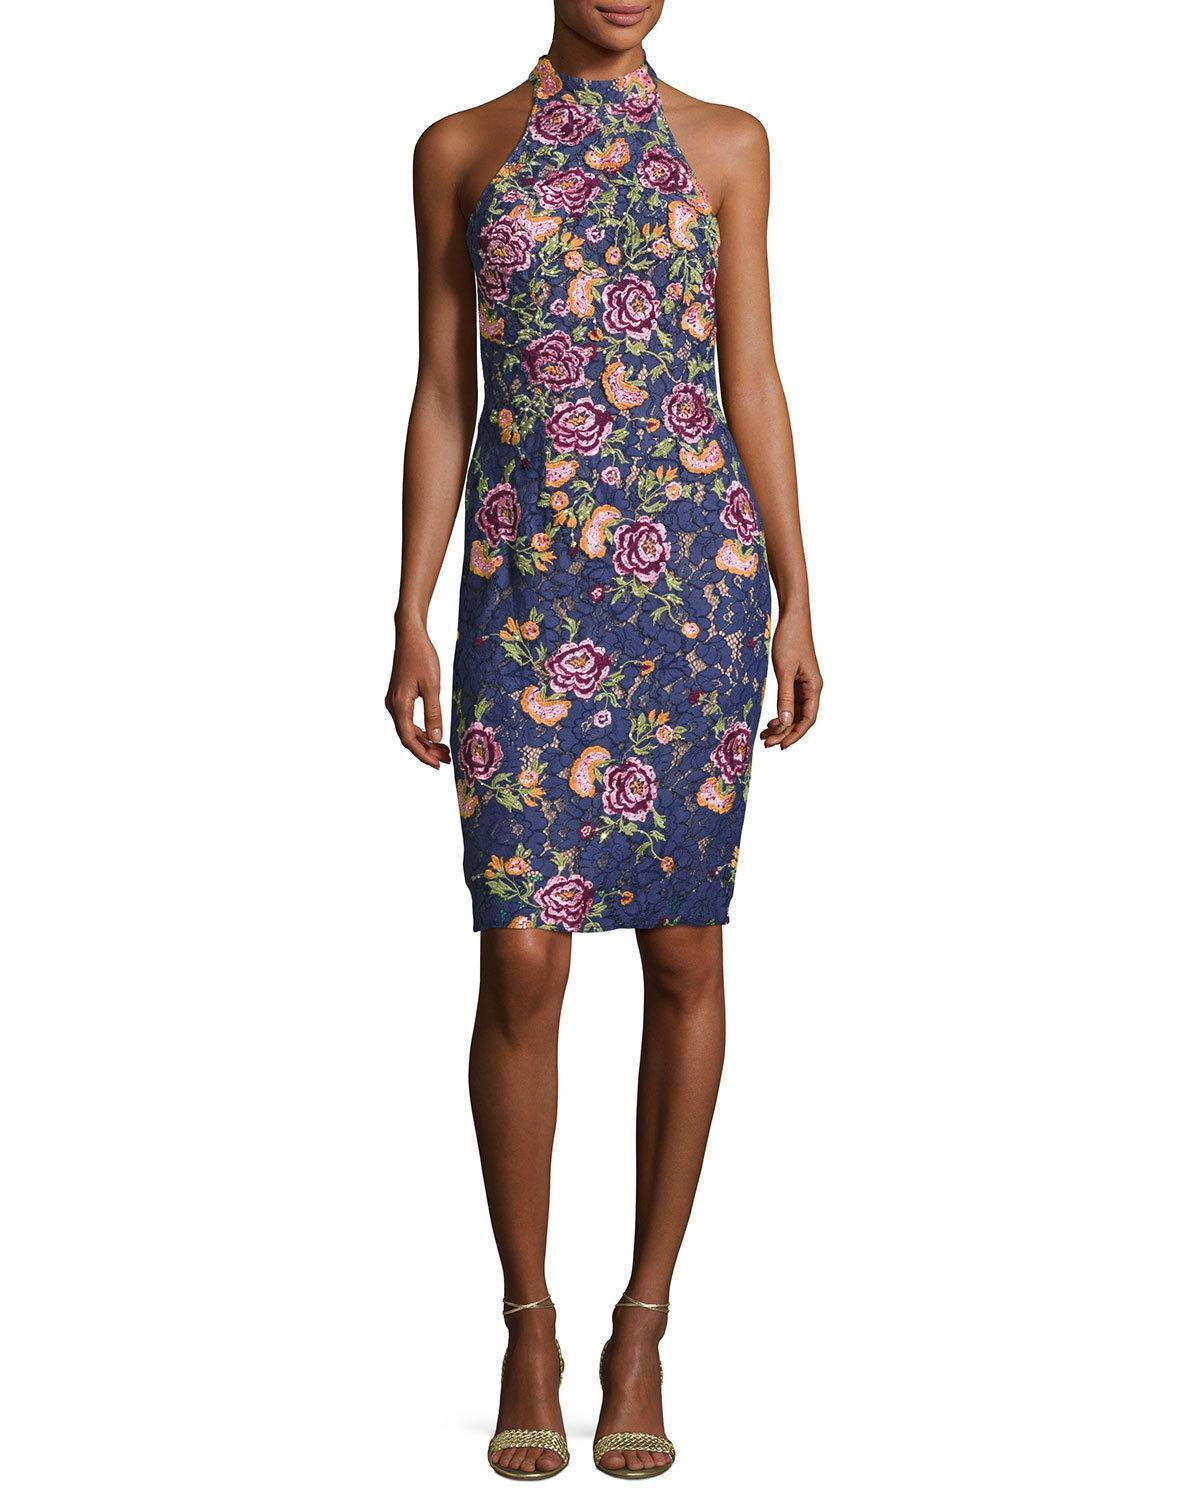 Jovani sleeveless embroidered floral lace cocktail dress